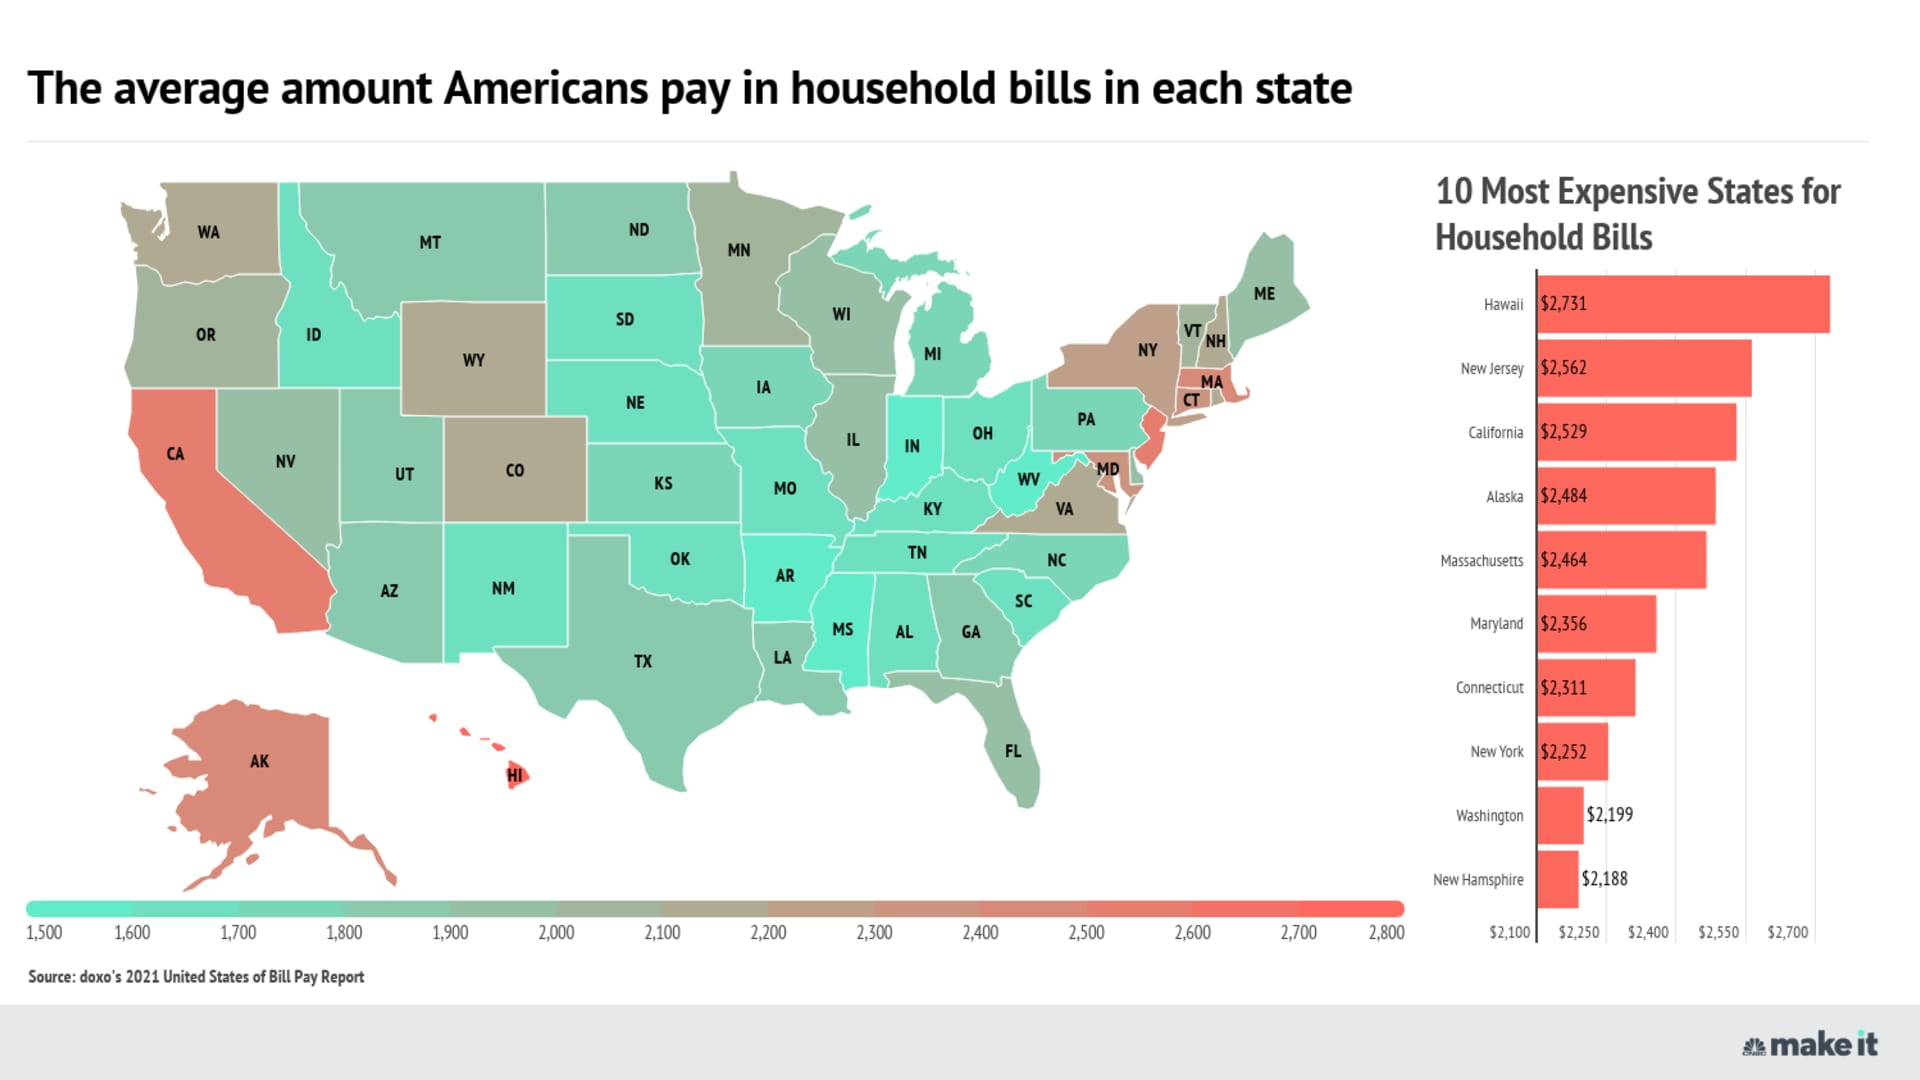 Here's a look at how much households spend each month on their bills in each state.